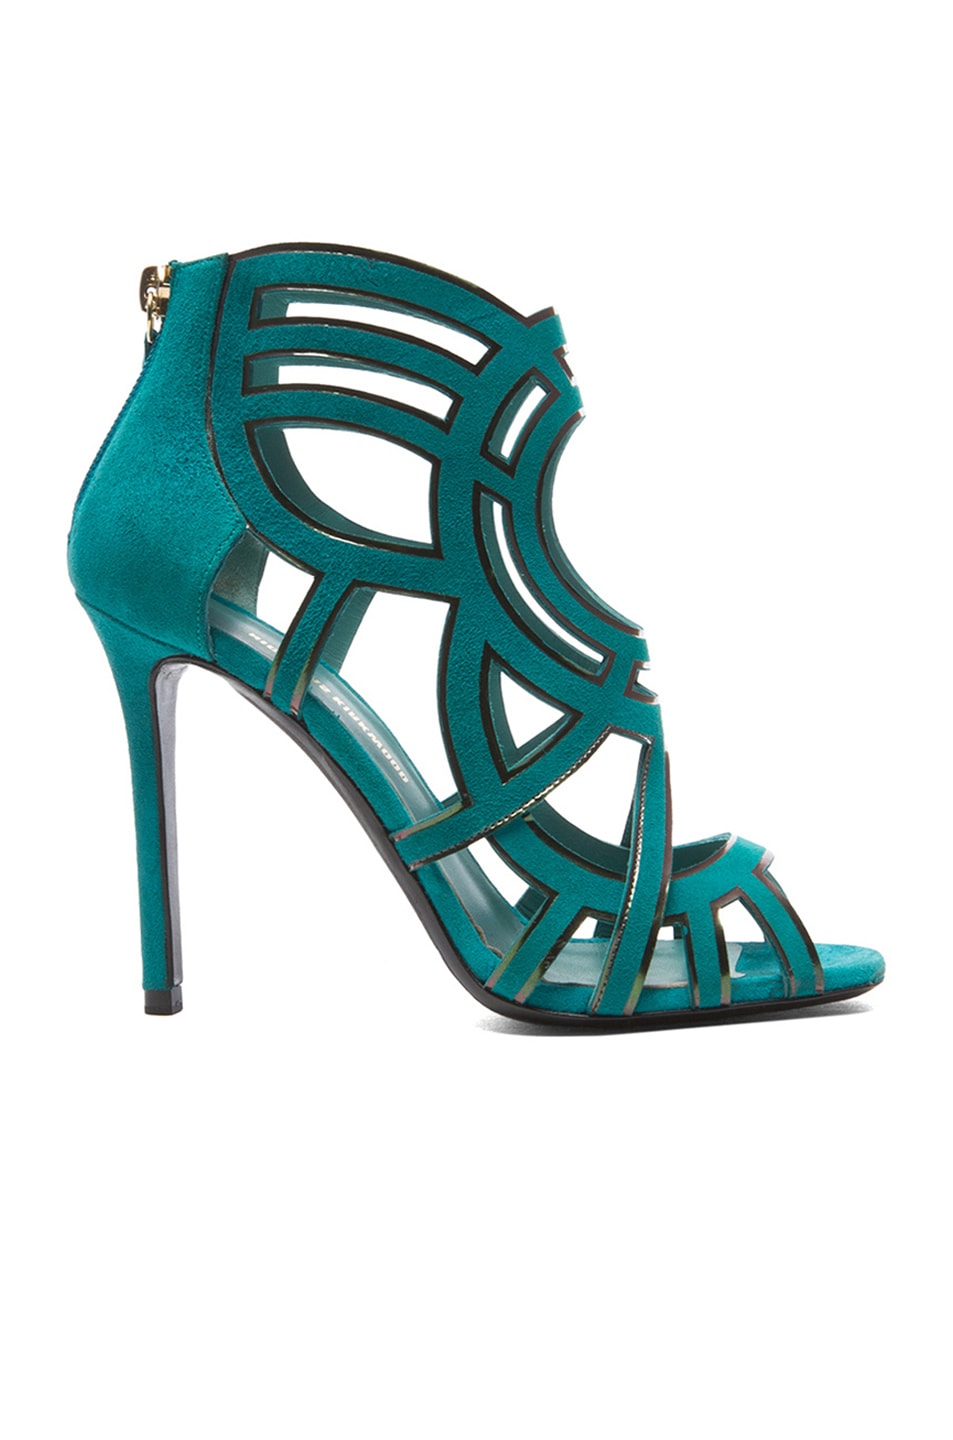 Image 1 of Nicholas Kirkwood Laser Cut Suede Booties in Teal